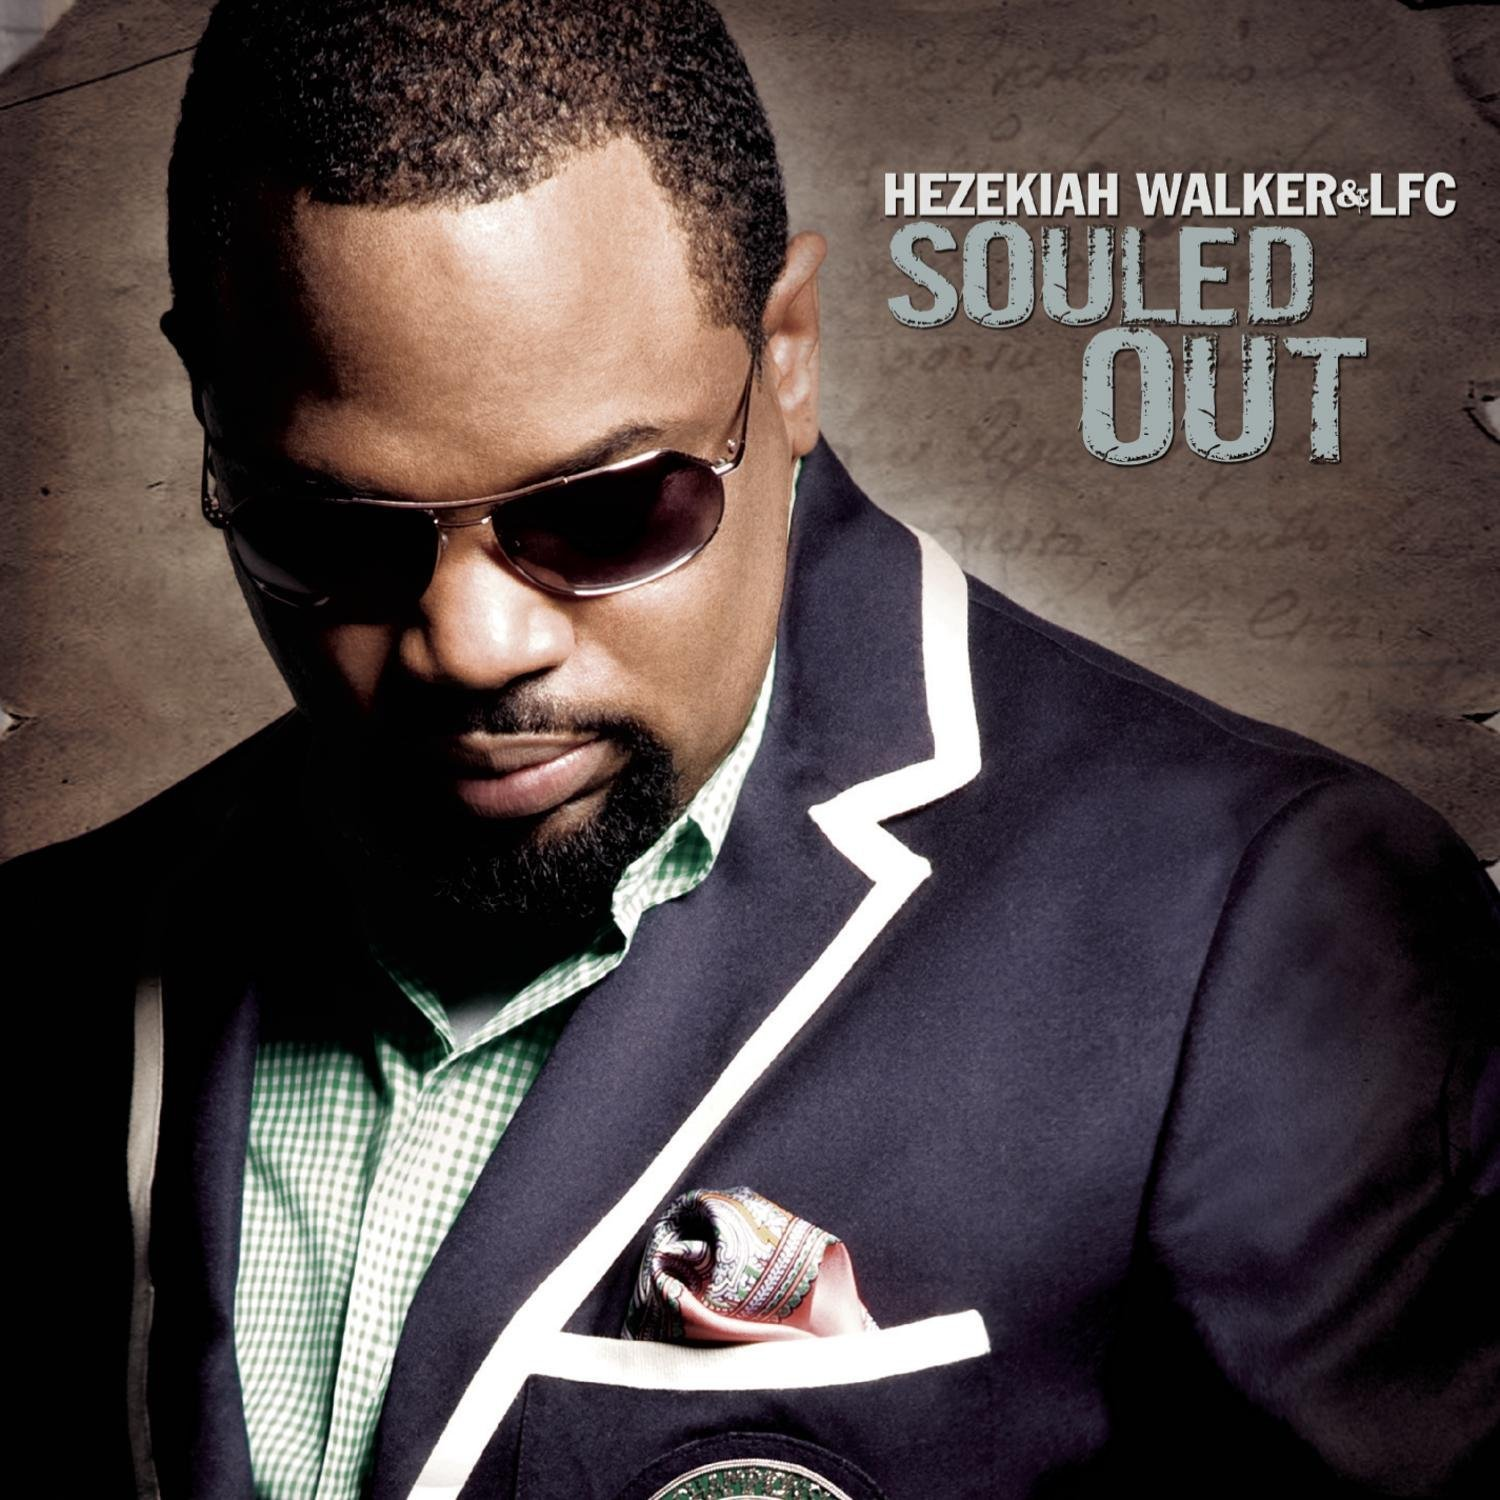 """Souled Out""    ""Keep On Moving On""   Written by Estee Bullock along with Co-writer Nathan McNair.  Souled Out (A featured single) was Billboard's #1 Gospel Song in the country for 2010 and received multiple nominations.  Released in 2008."